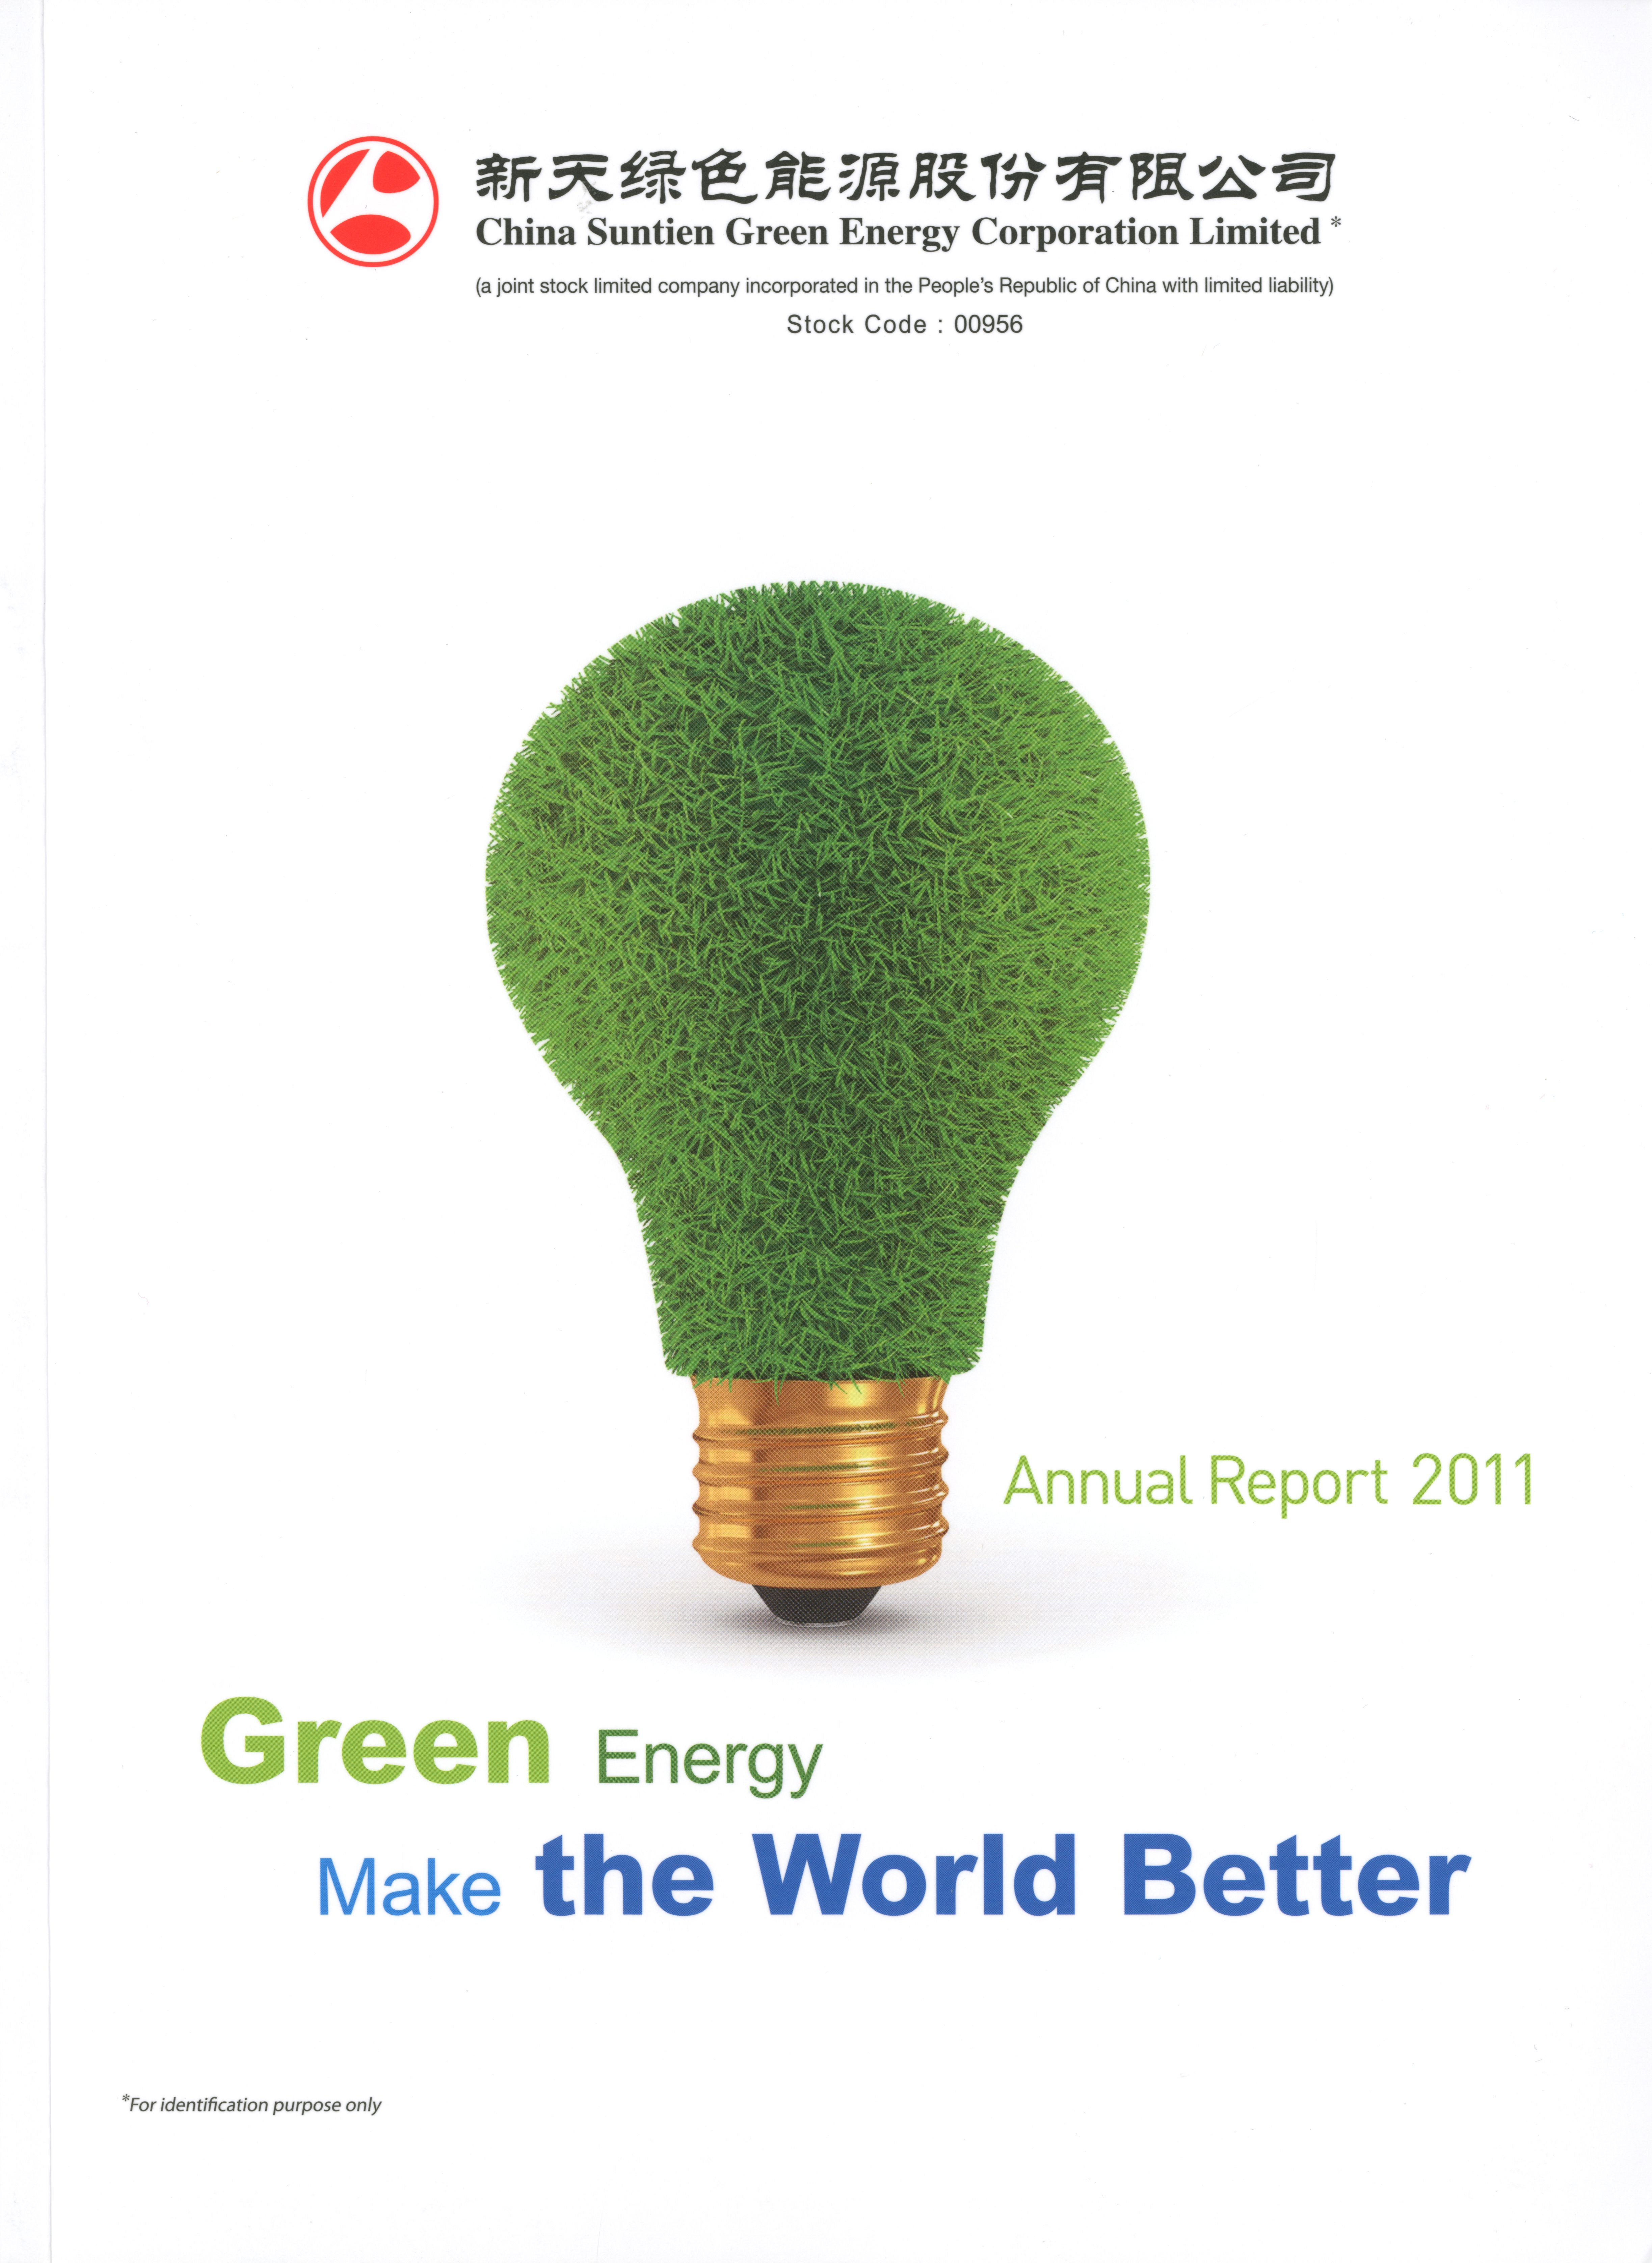 Lacp 2011 Vision Awards Annual Report Competition China